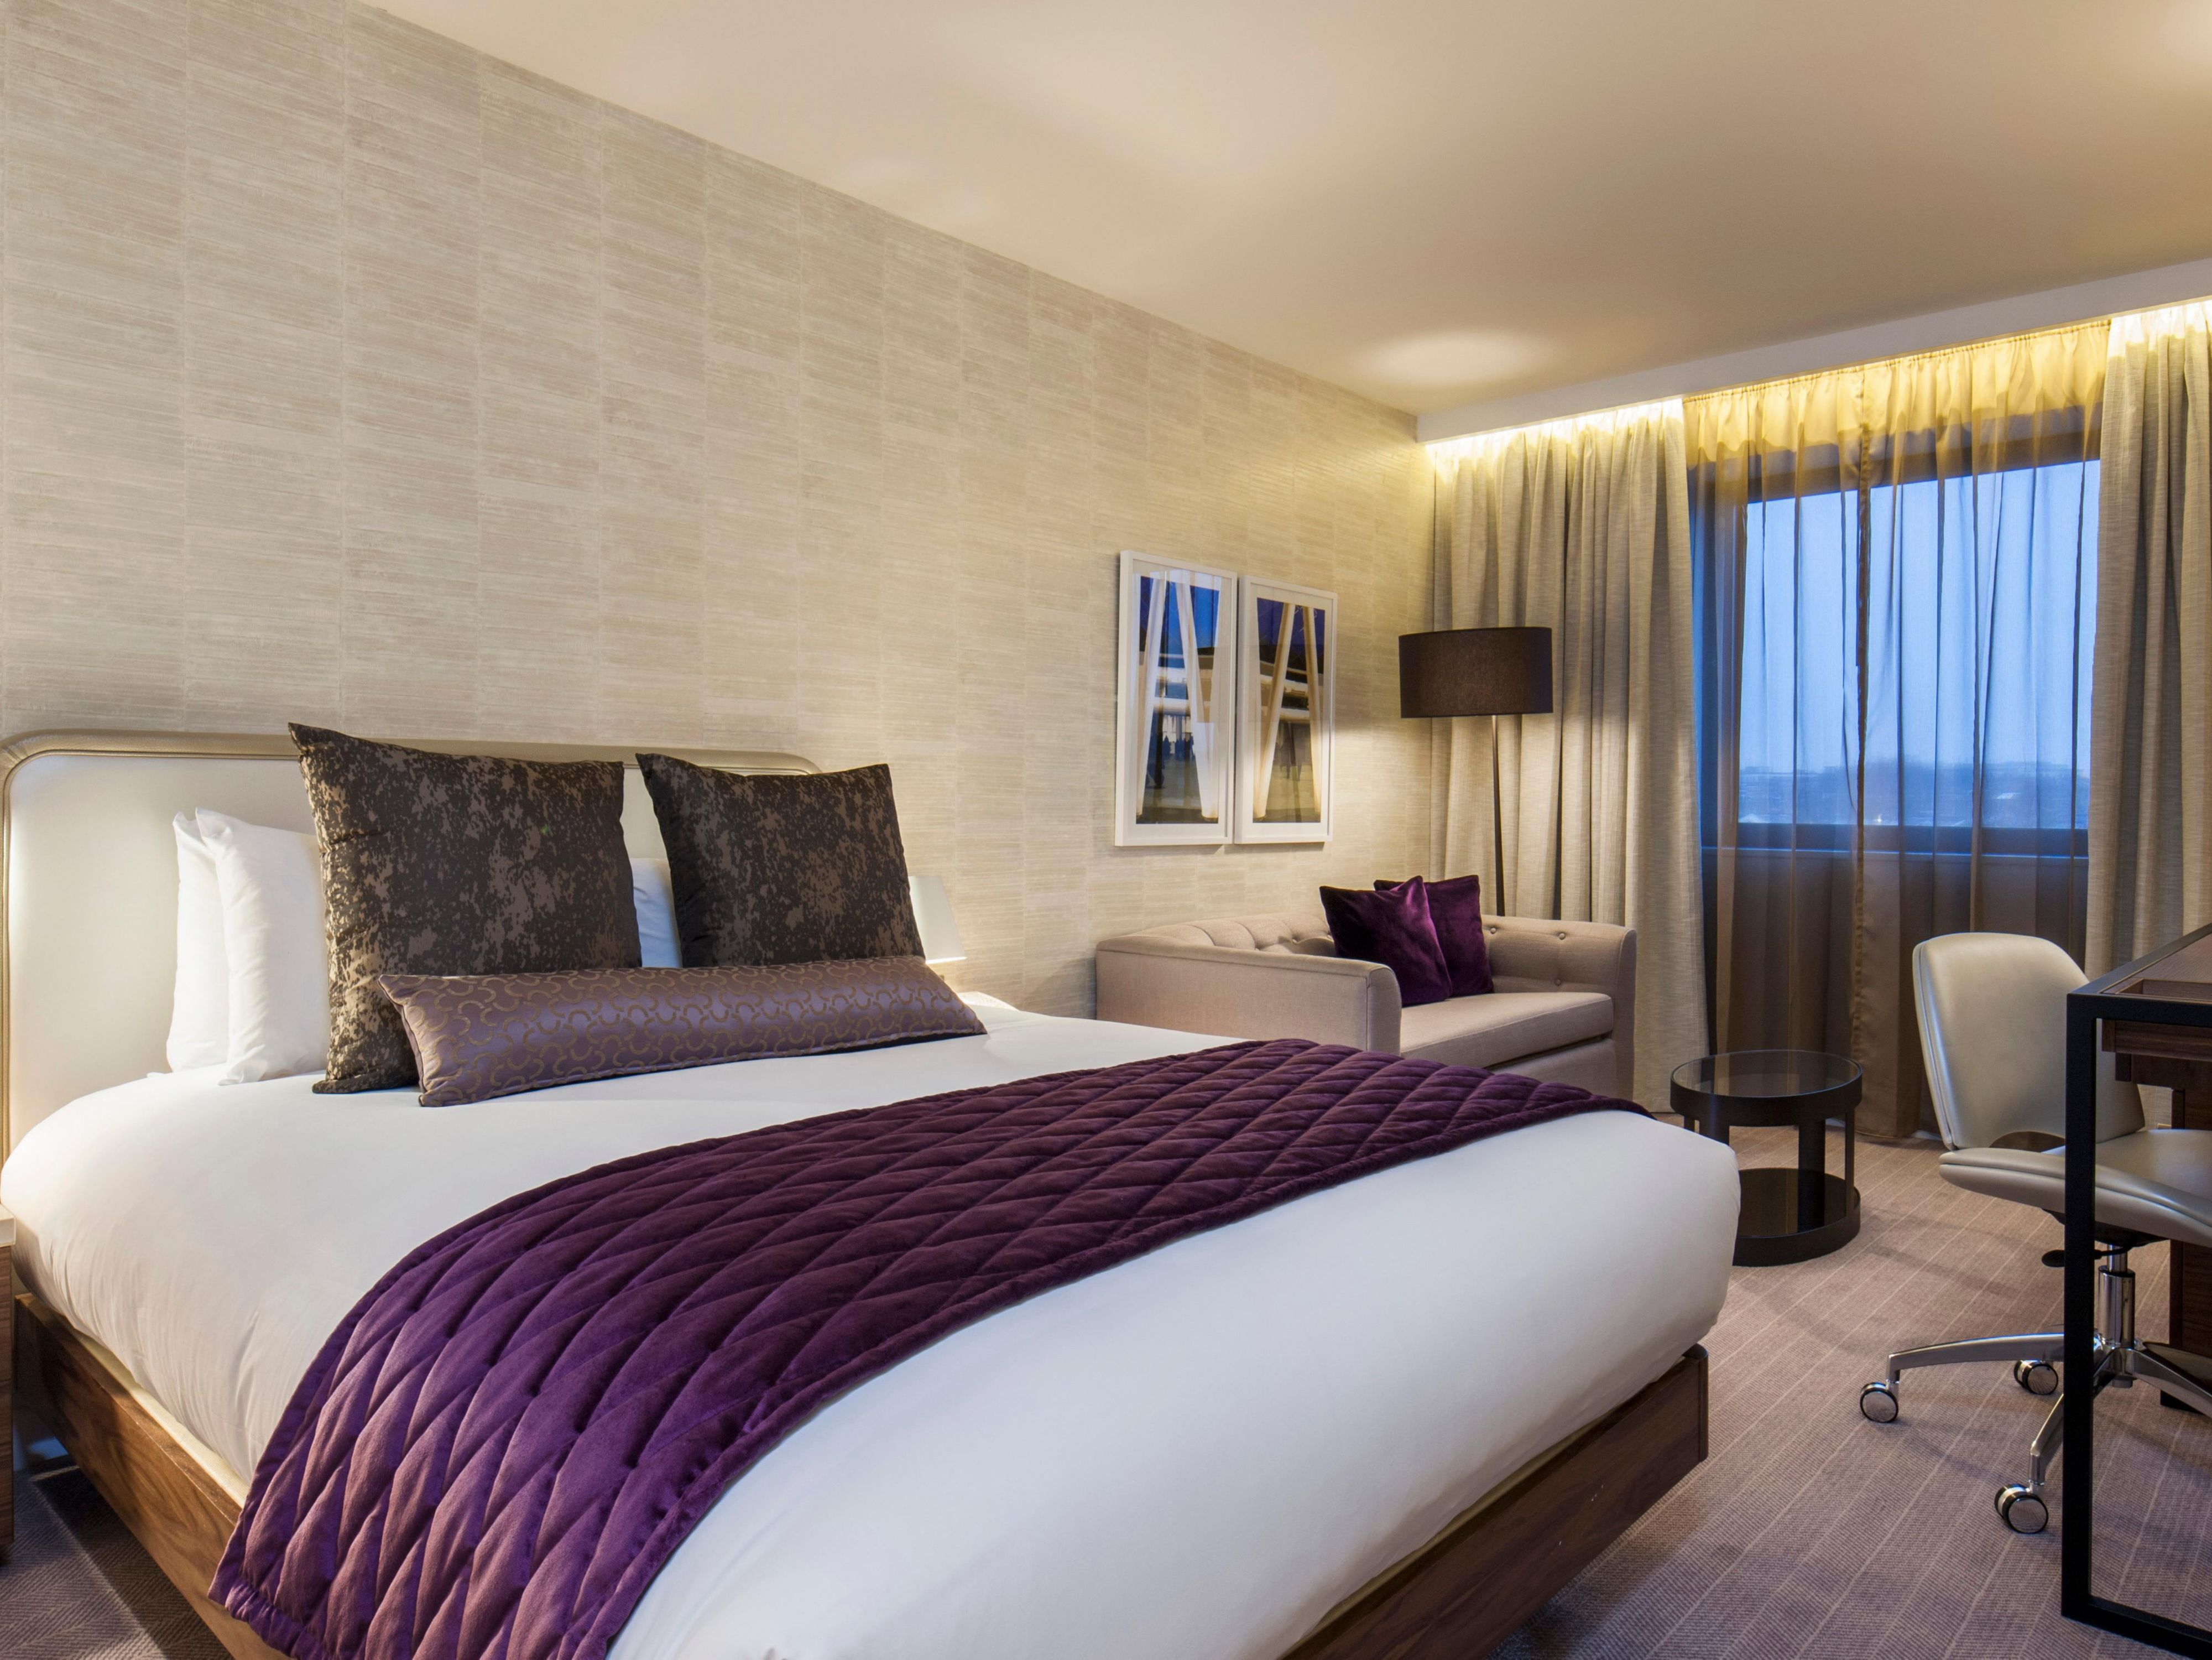 Hotel london cheap internet rates for kings cross hotels in london - Ihg Crowneplaza Components Photogallery Roomphotos Primary